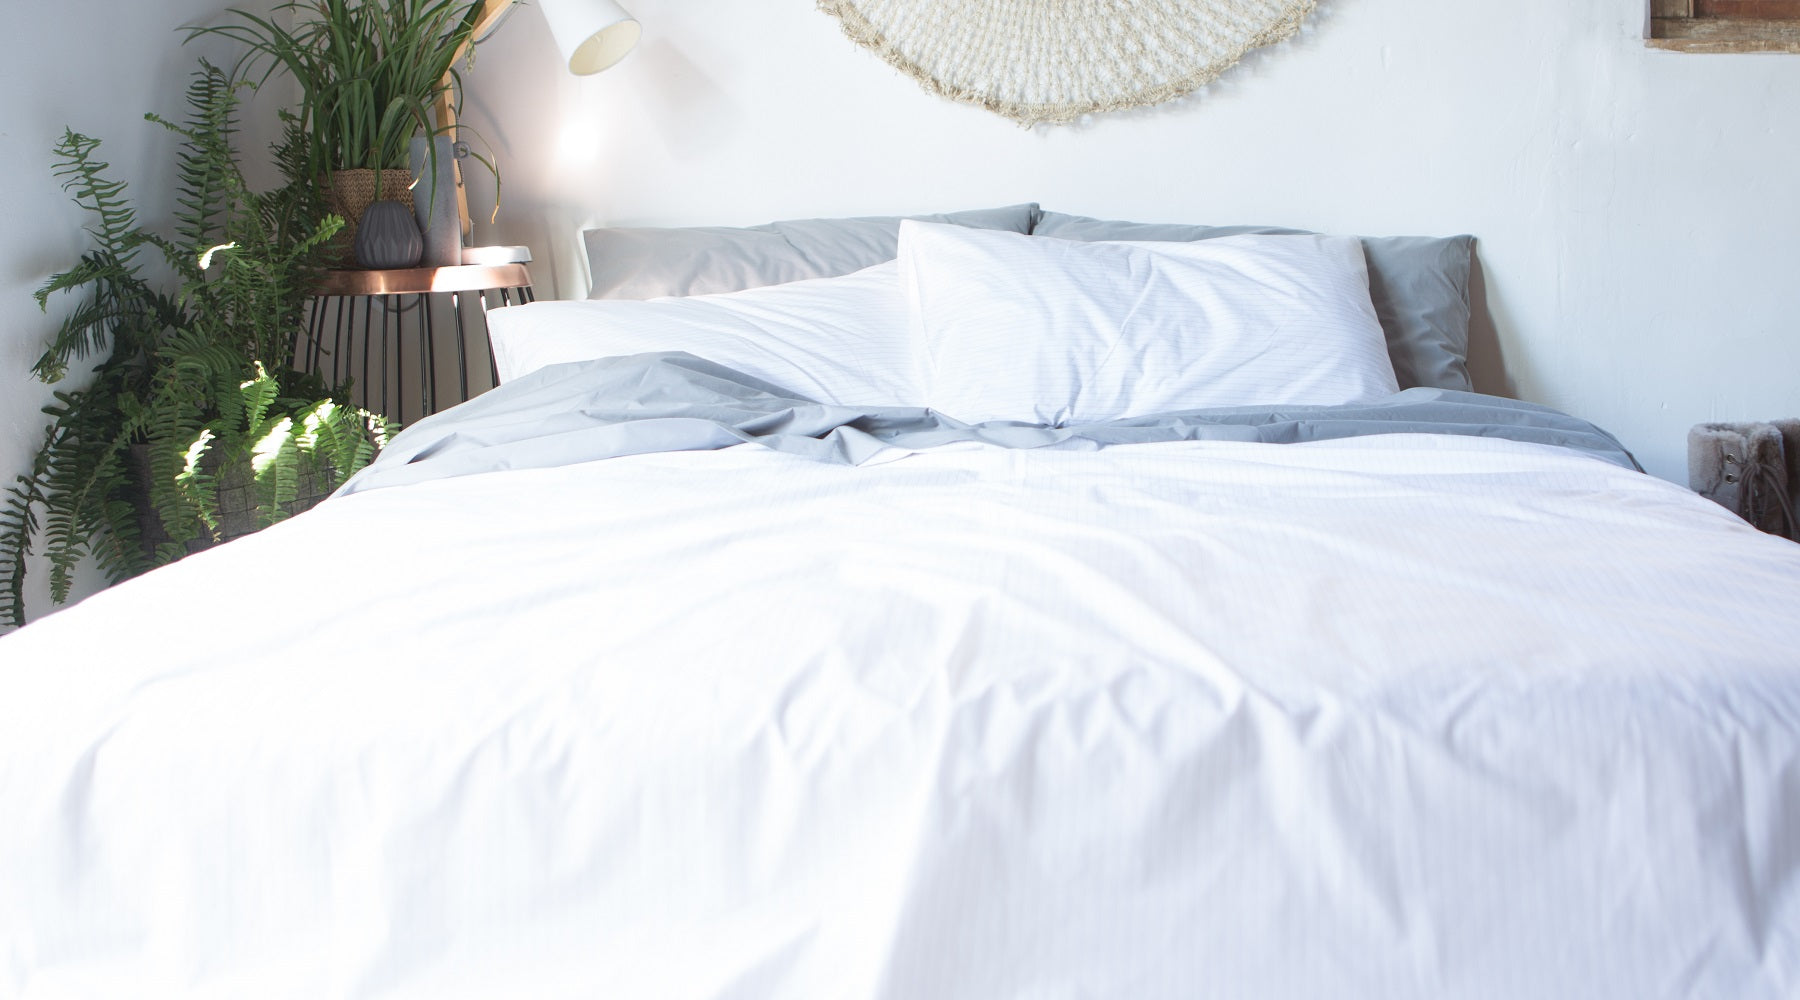 How To Keep White Sheets White